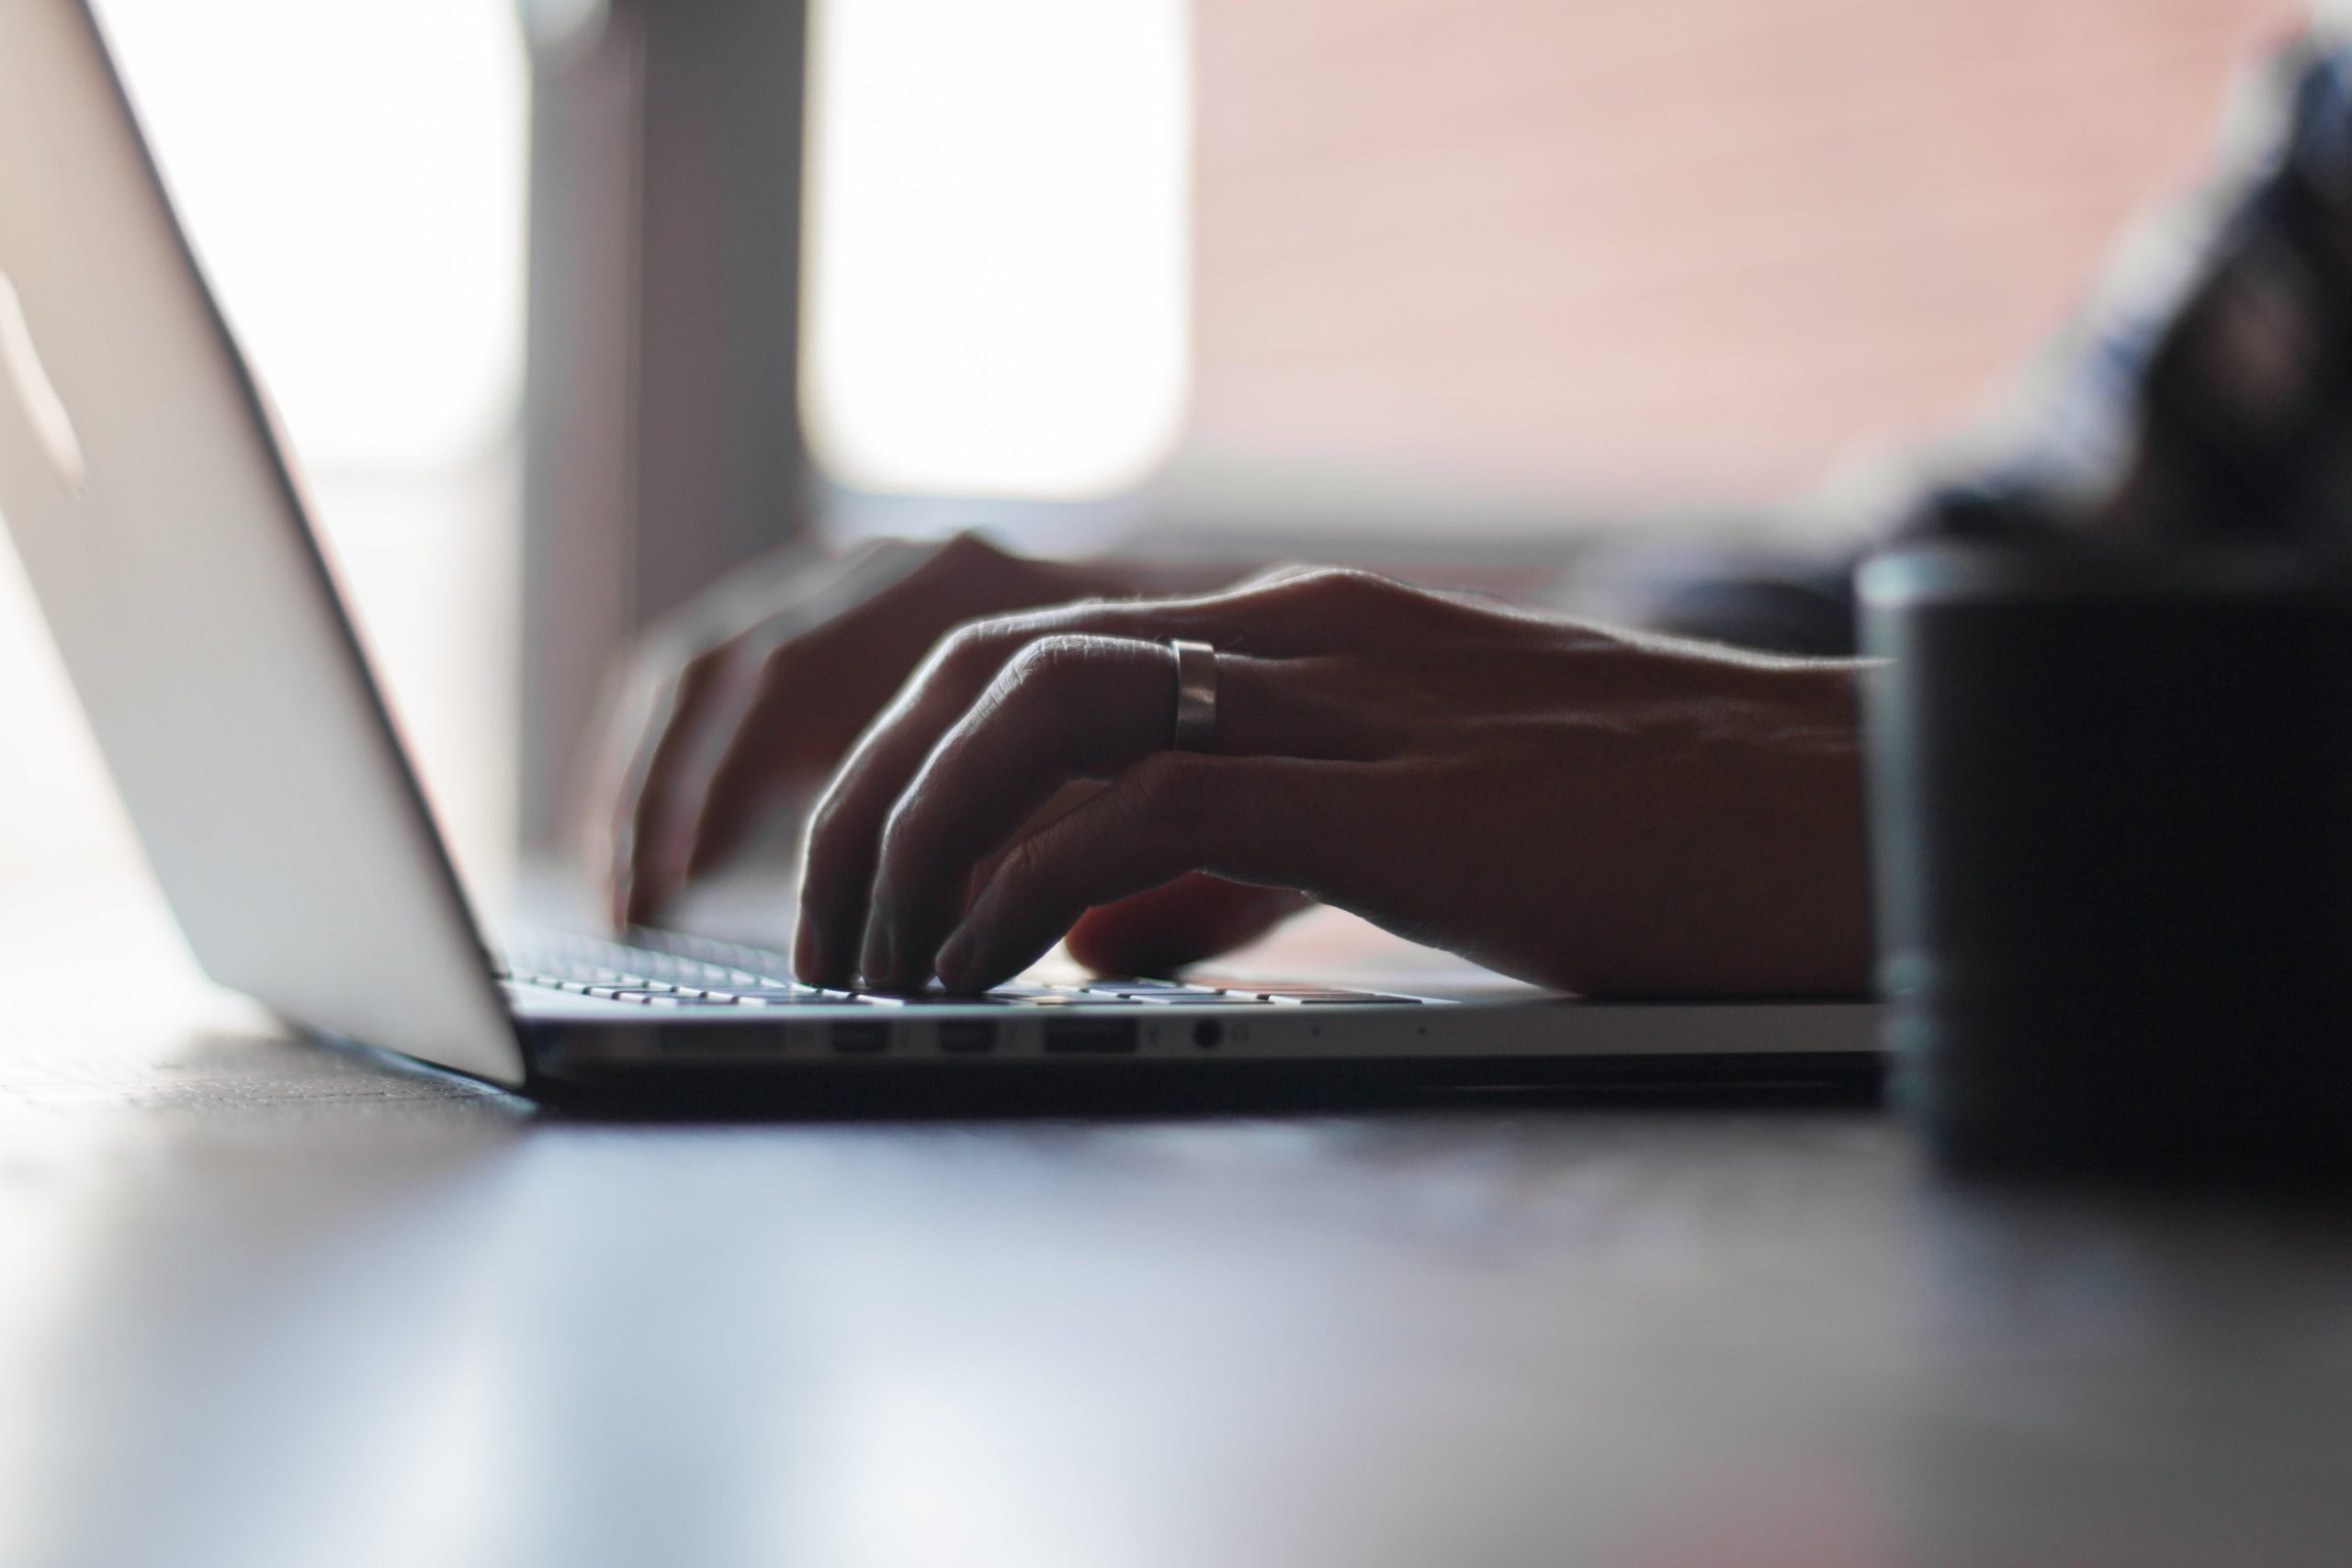 Online Therapy: Has Its Time Come? Lessons From MOOCs